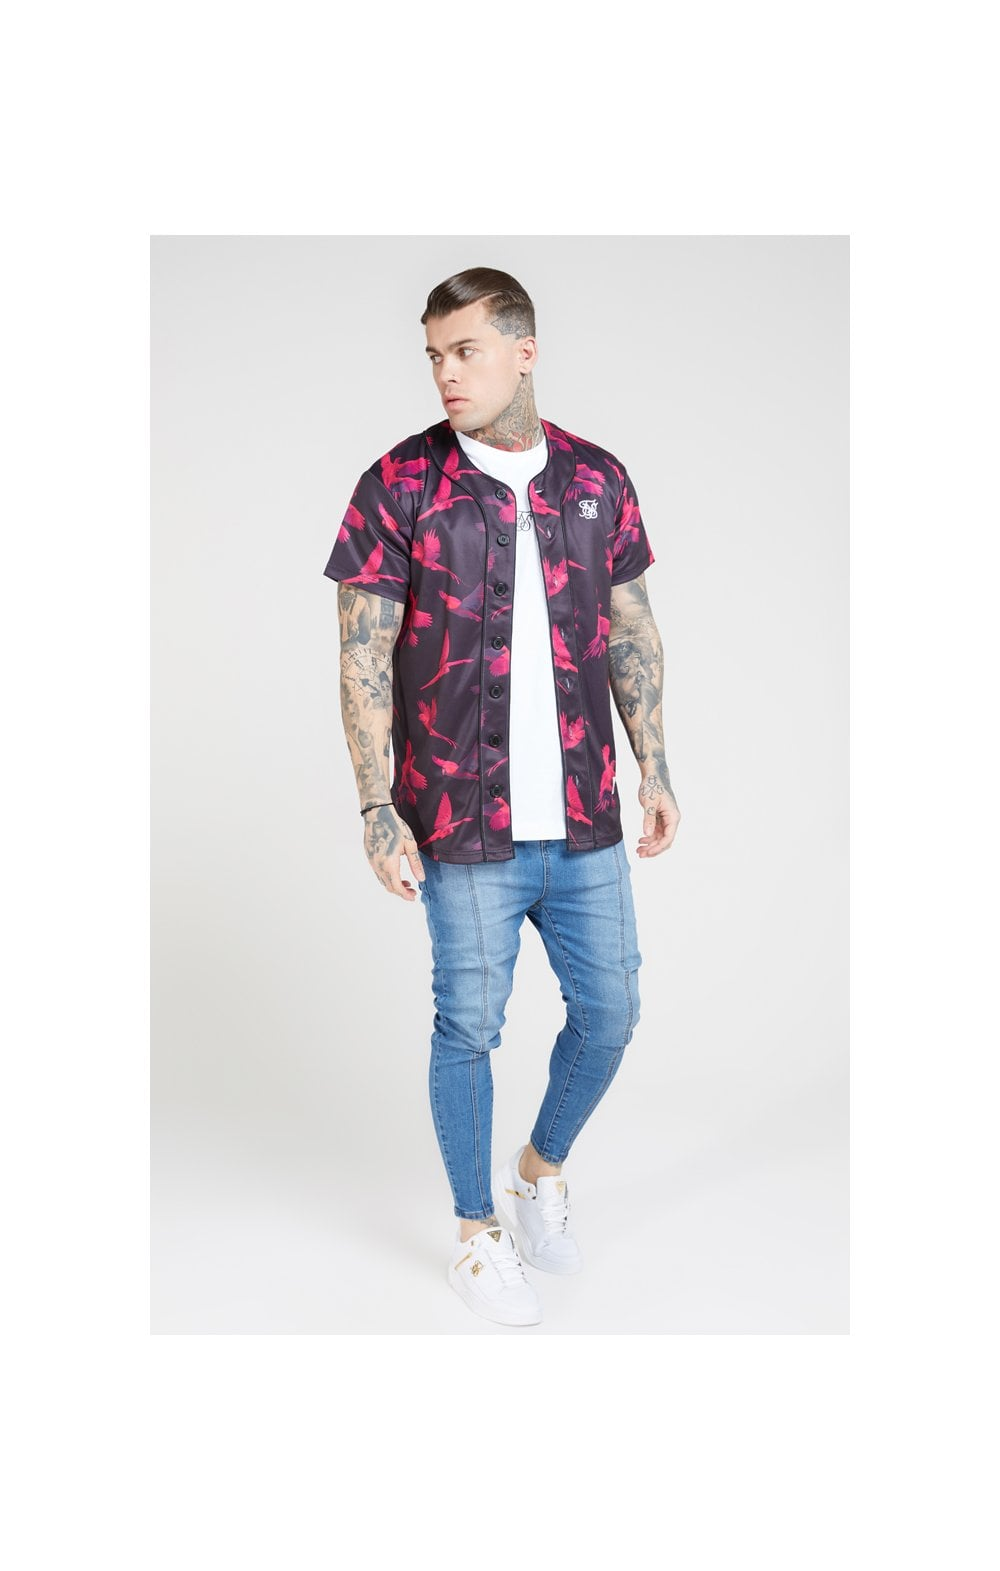 SikSilk Original Baseball Jersey – Black & Pink (2)